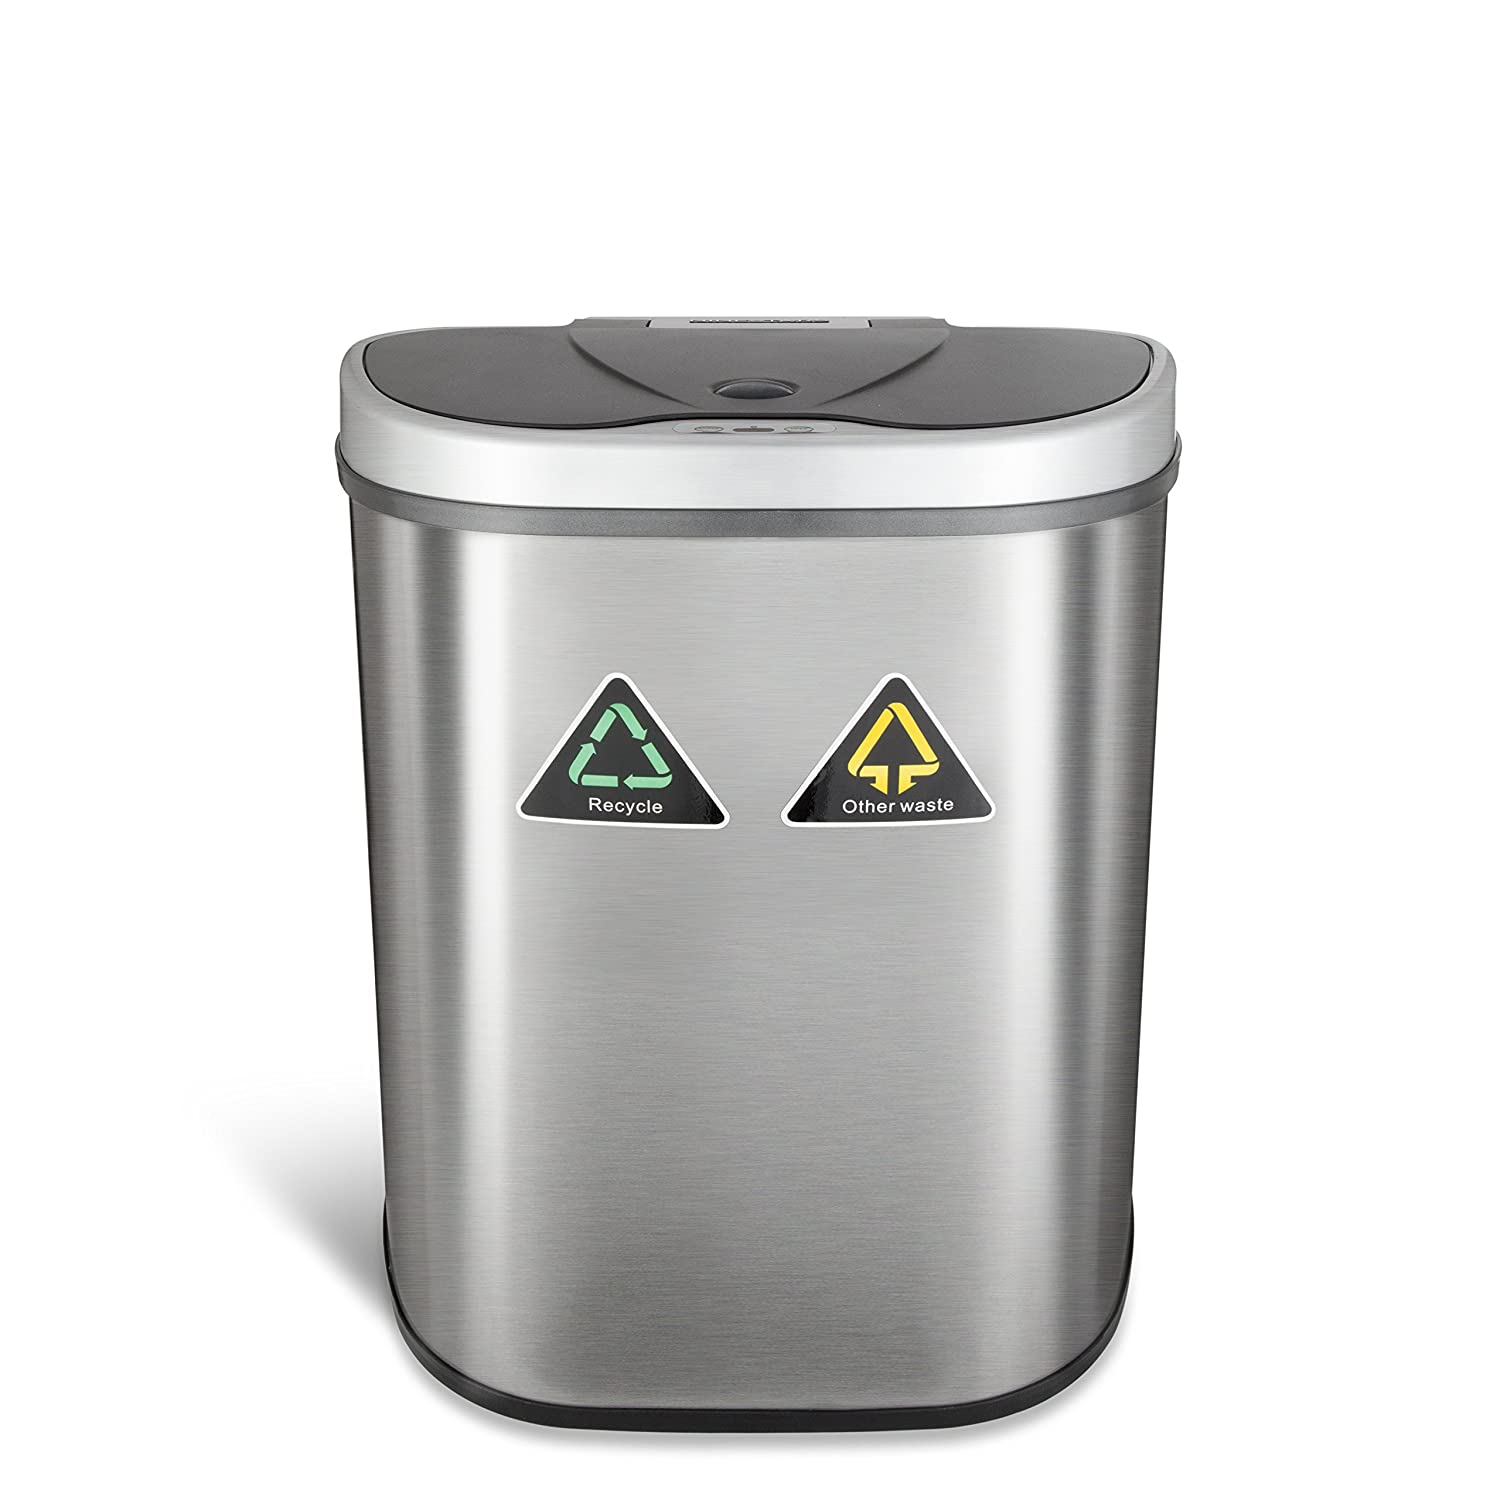 ninestars dzt7011r the original touchless automatic motion sensor trash canrecycler 185 gal 70 l stainless steel